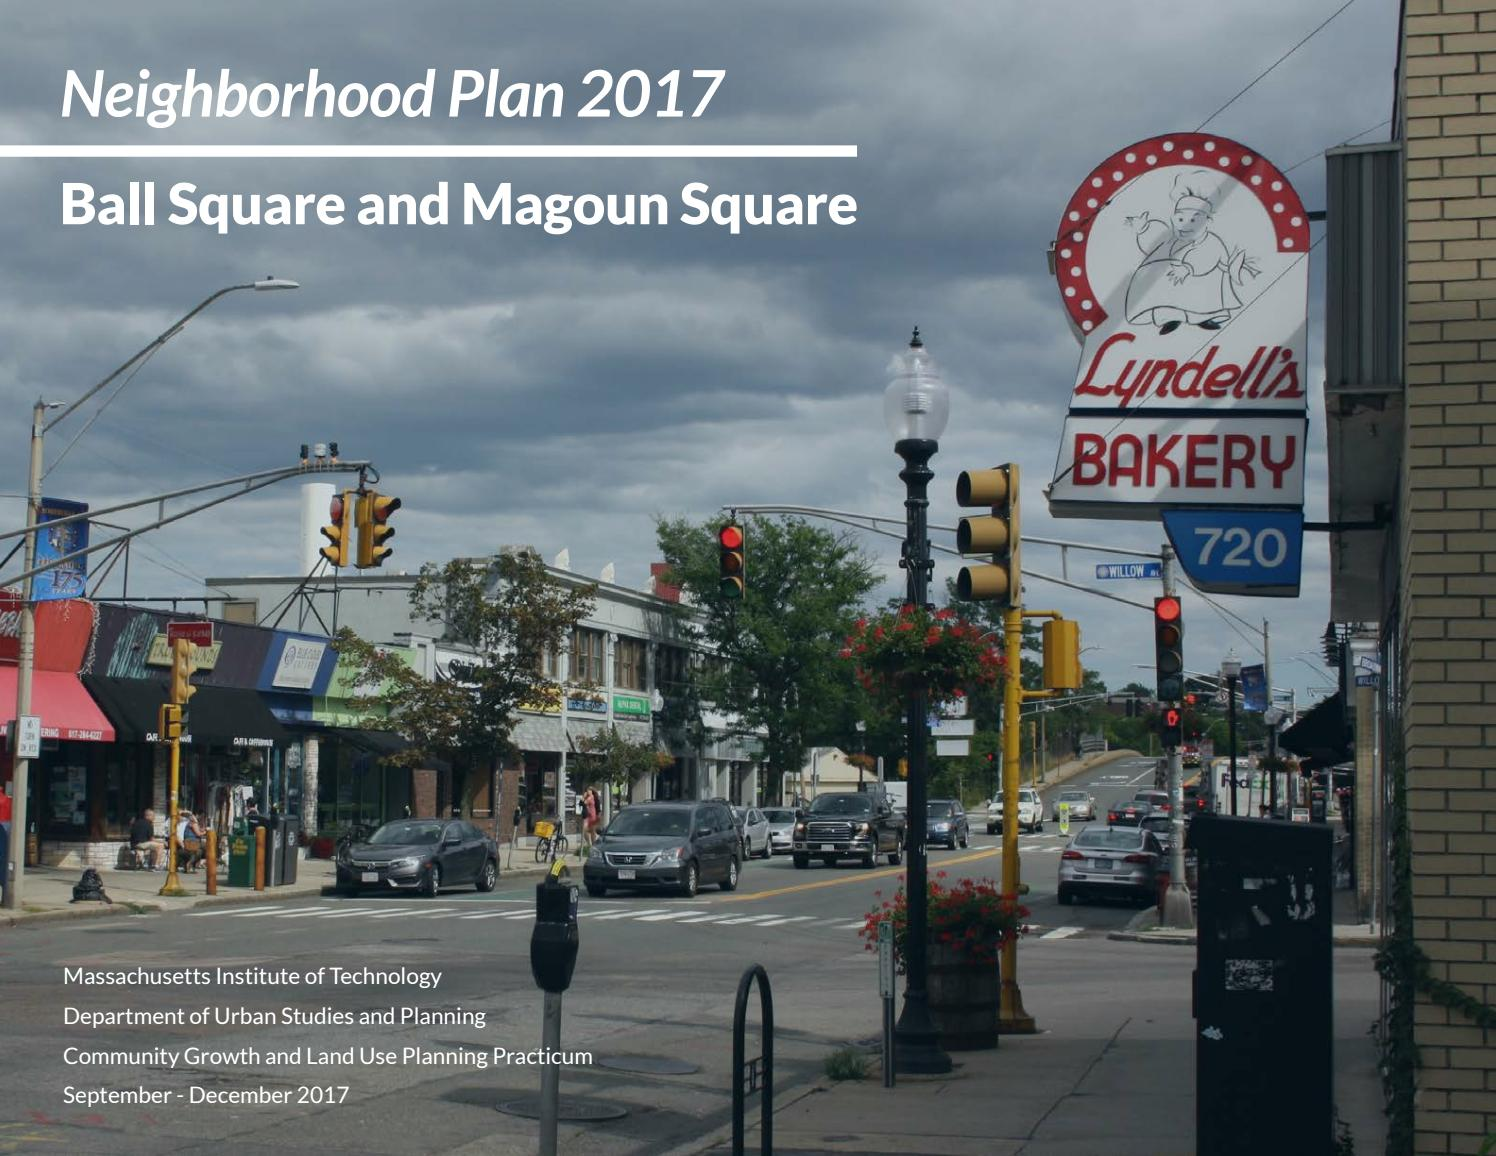 Neighborhood plan 2017 ball square and magoun square by mit dusp issuu